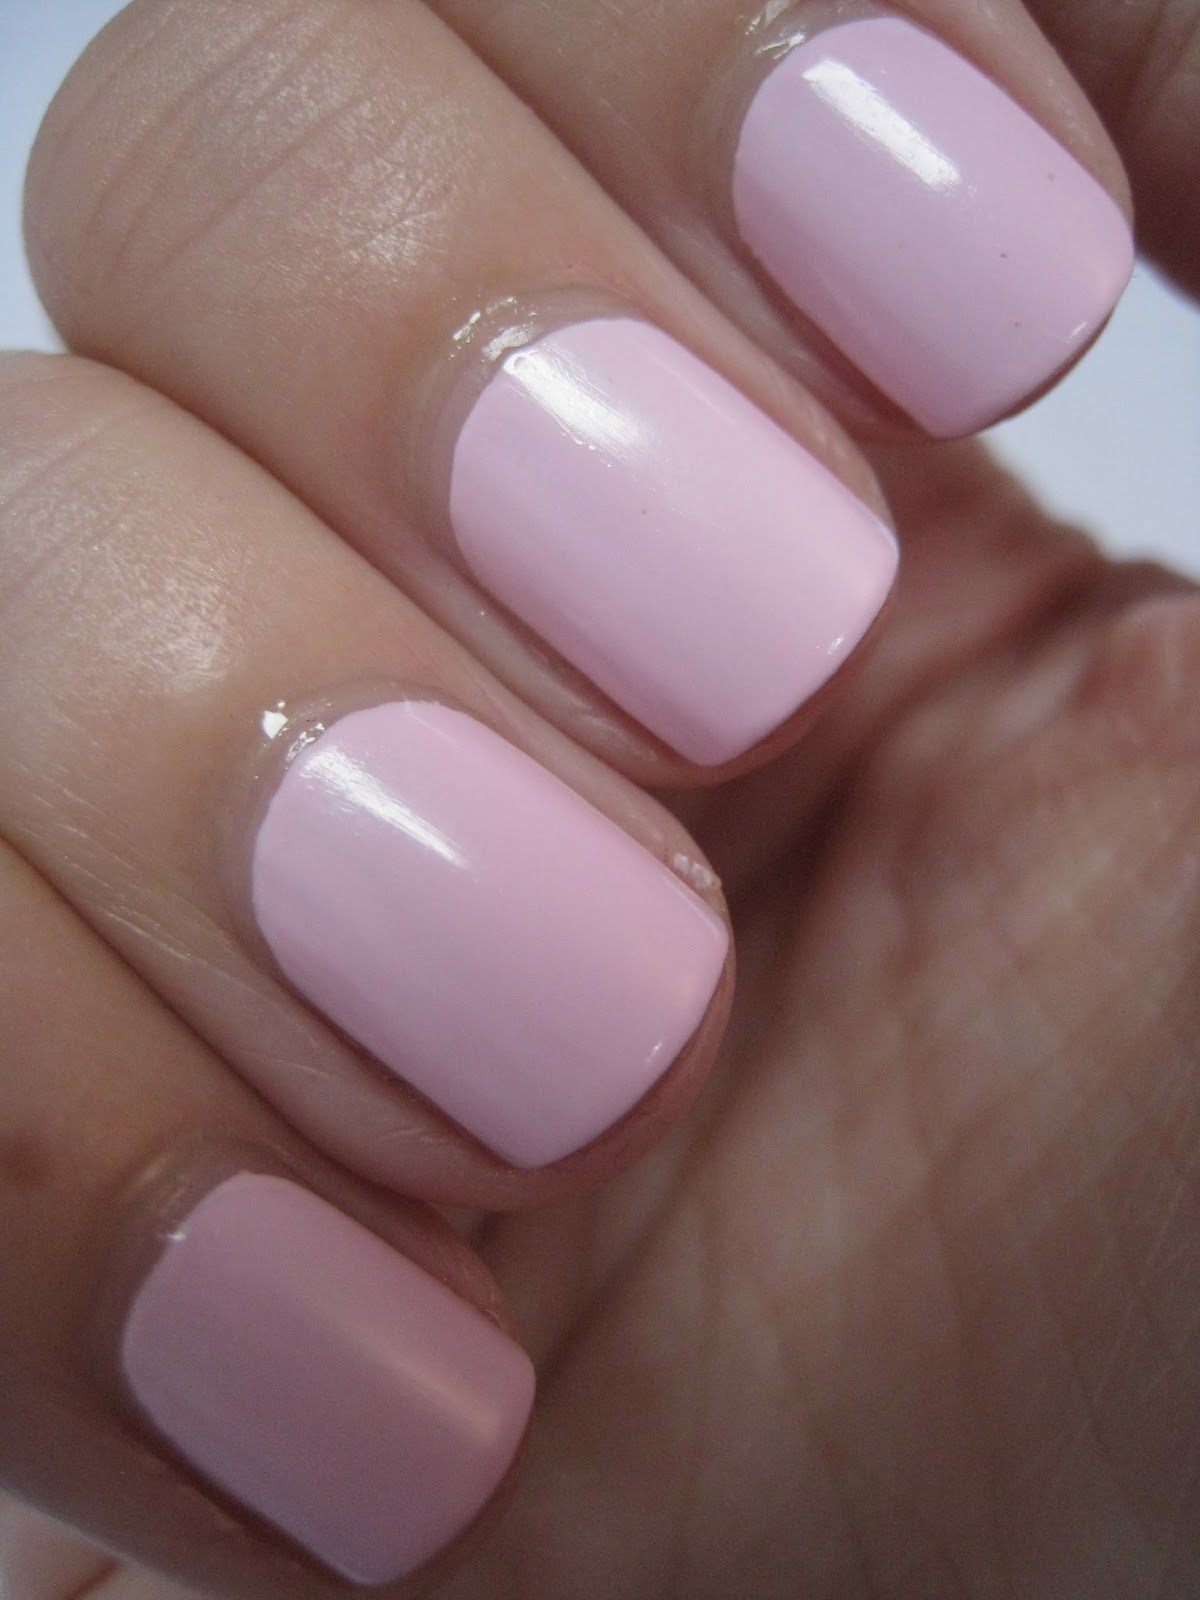 Naily Perfect Opi Mod About You Swatch